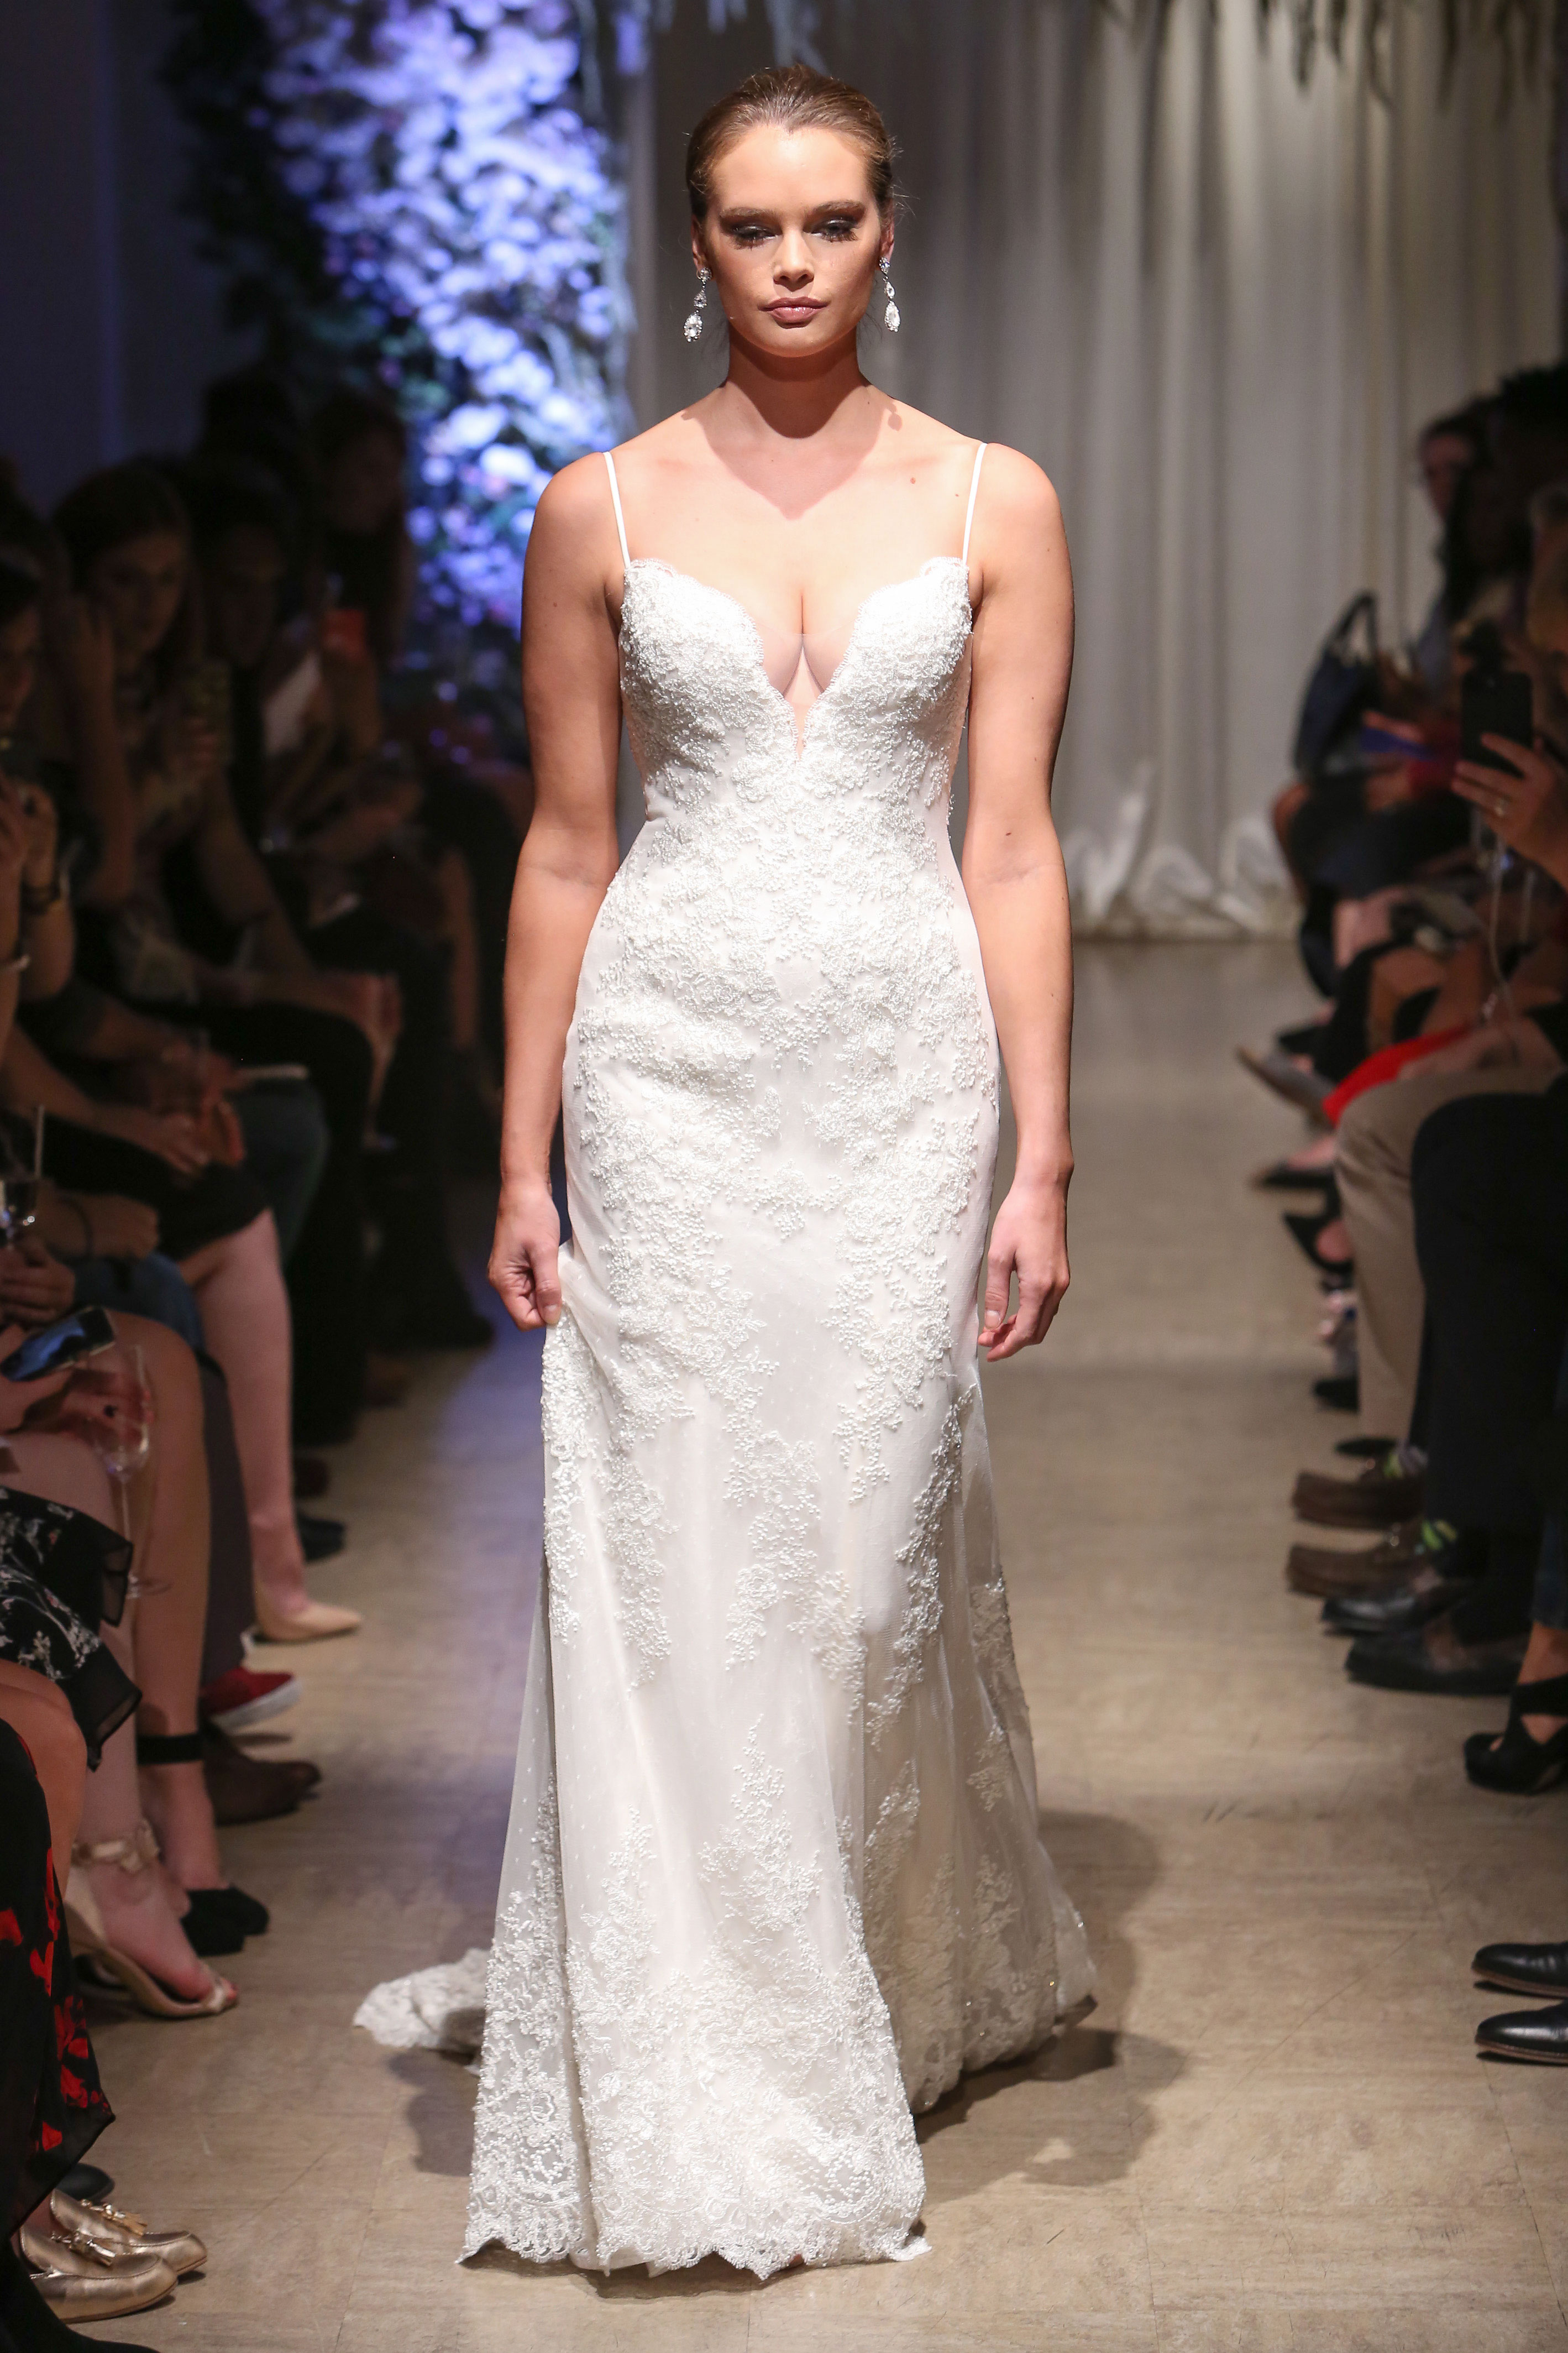 matthew christopher 2018 spaghetti strap plunging v-neck wedding dress